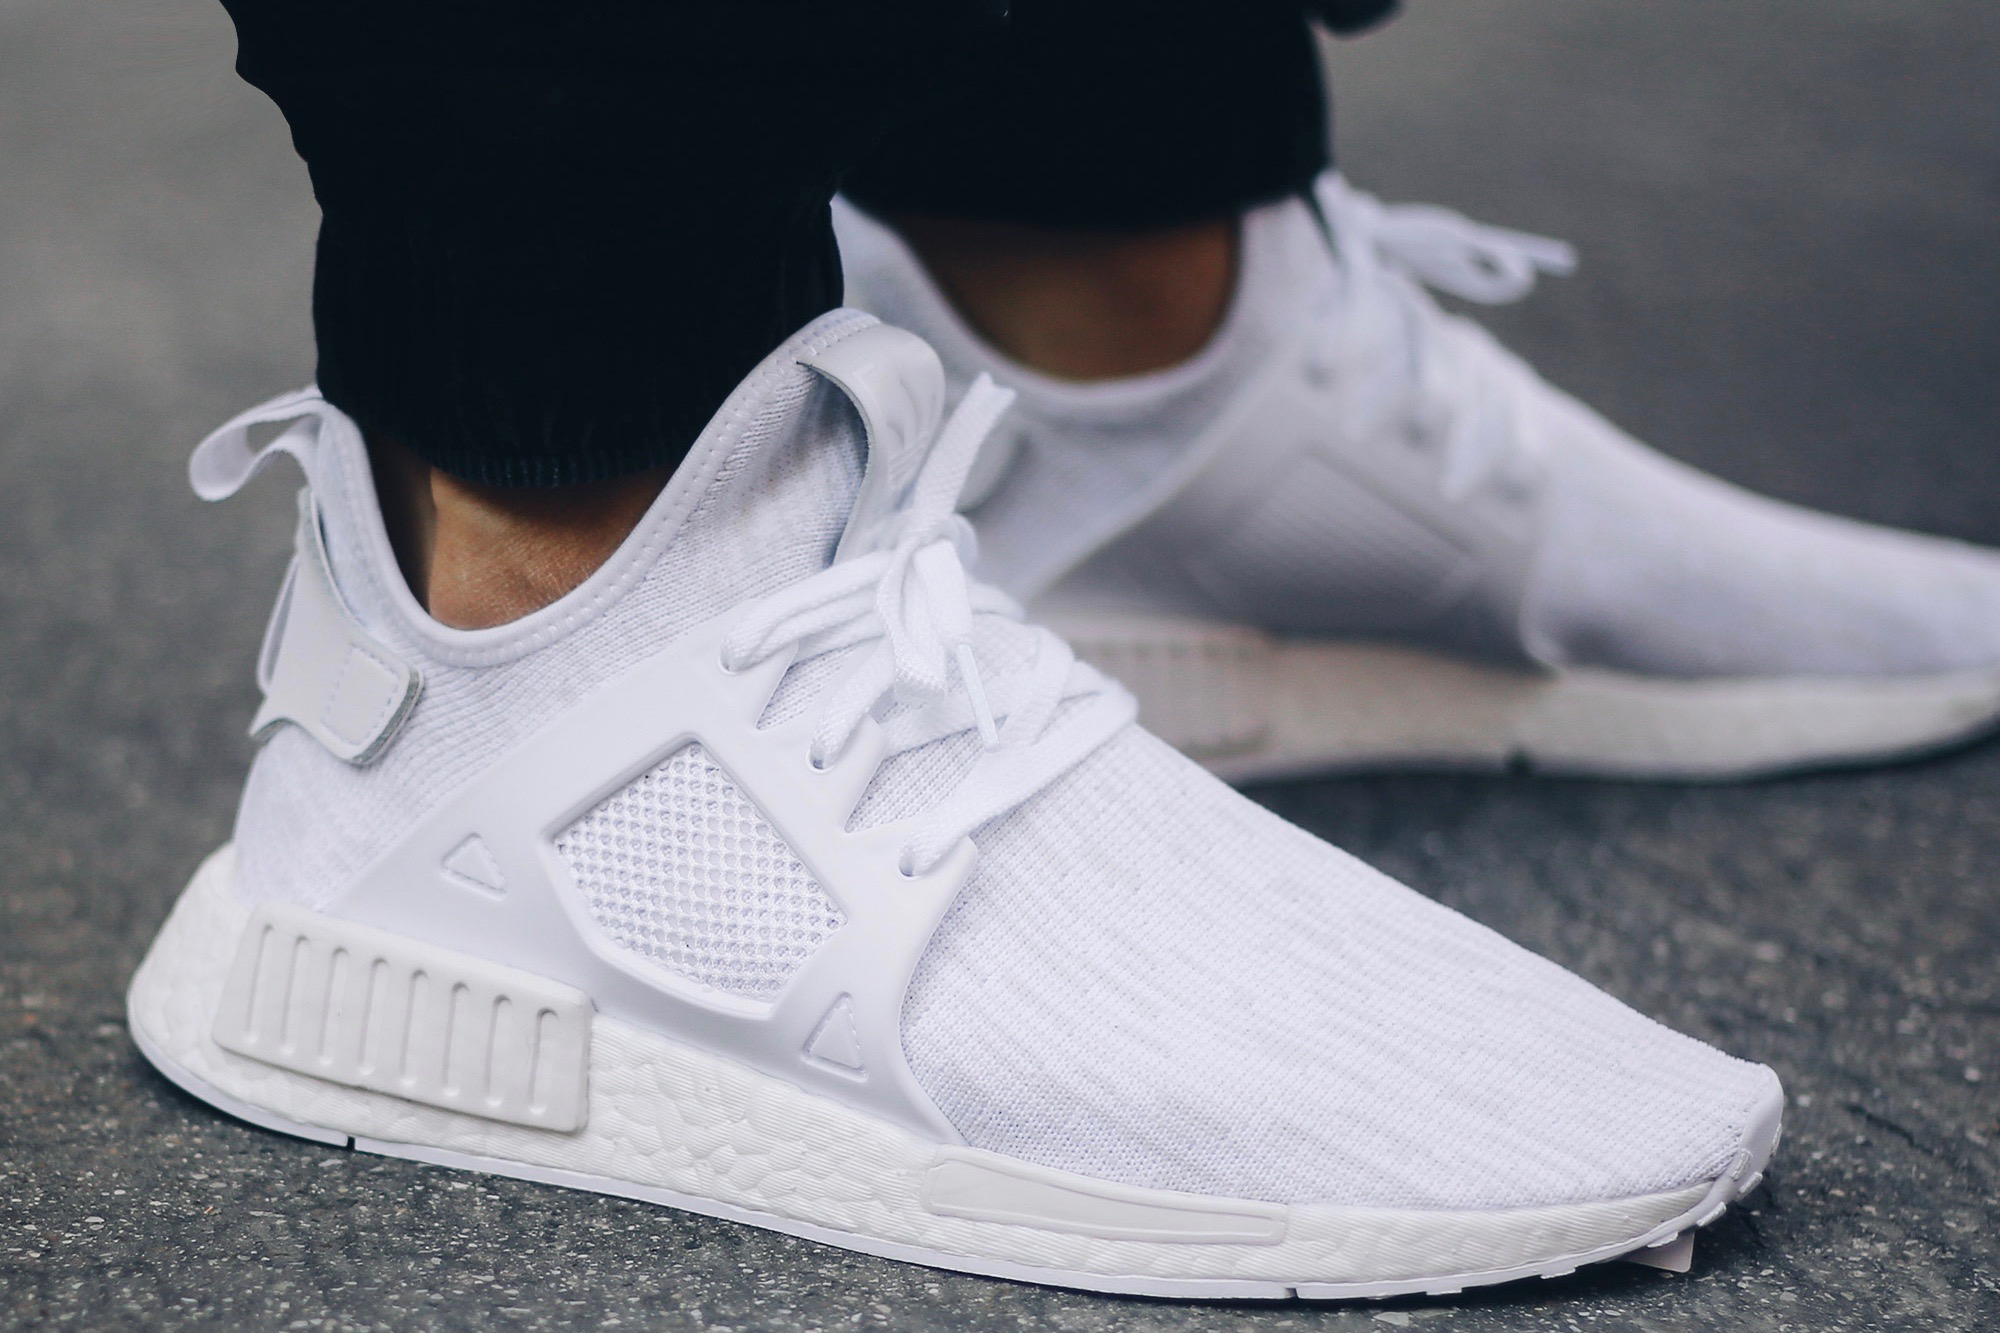 adidas NMD R1 & XR1 On foot Preview via BSTN Store OG